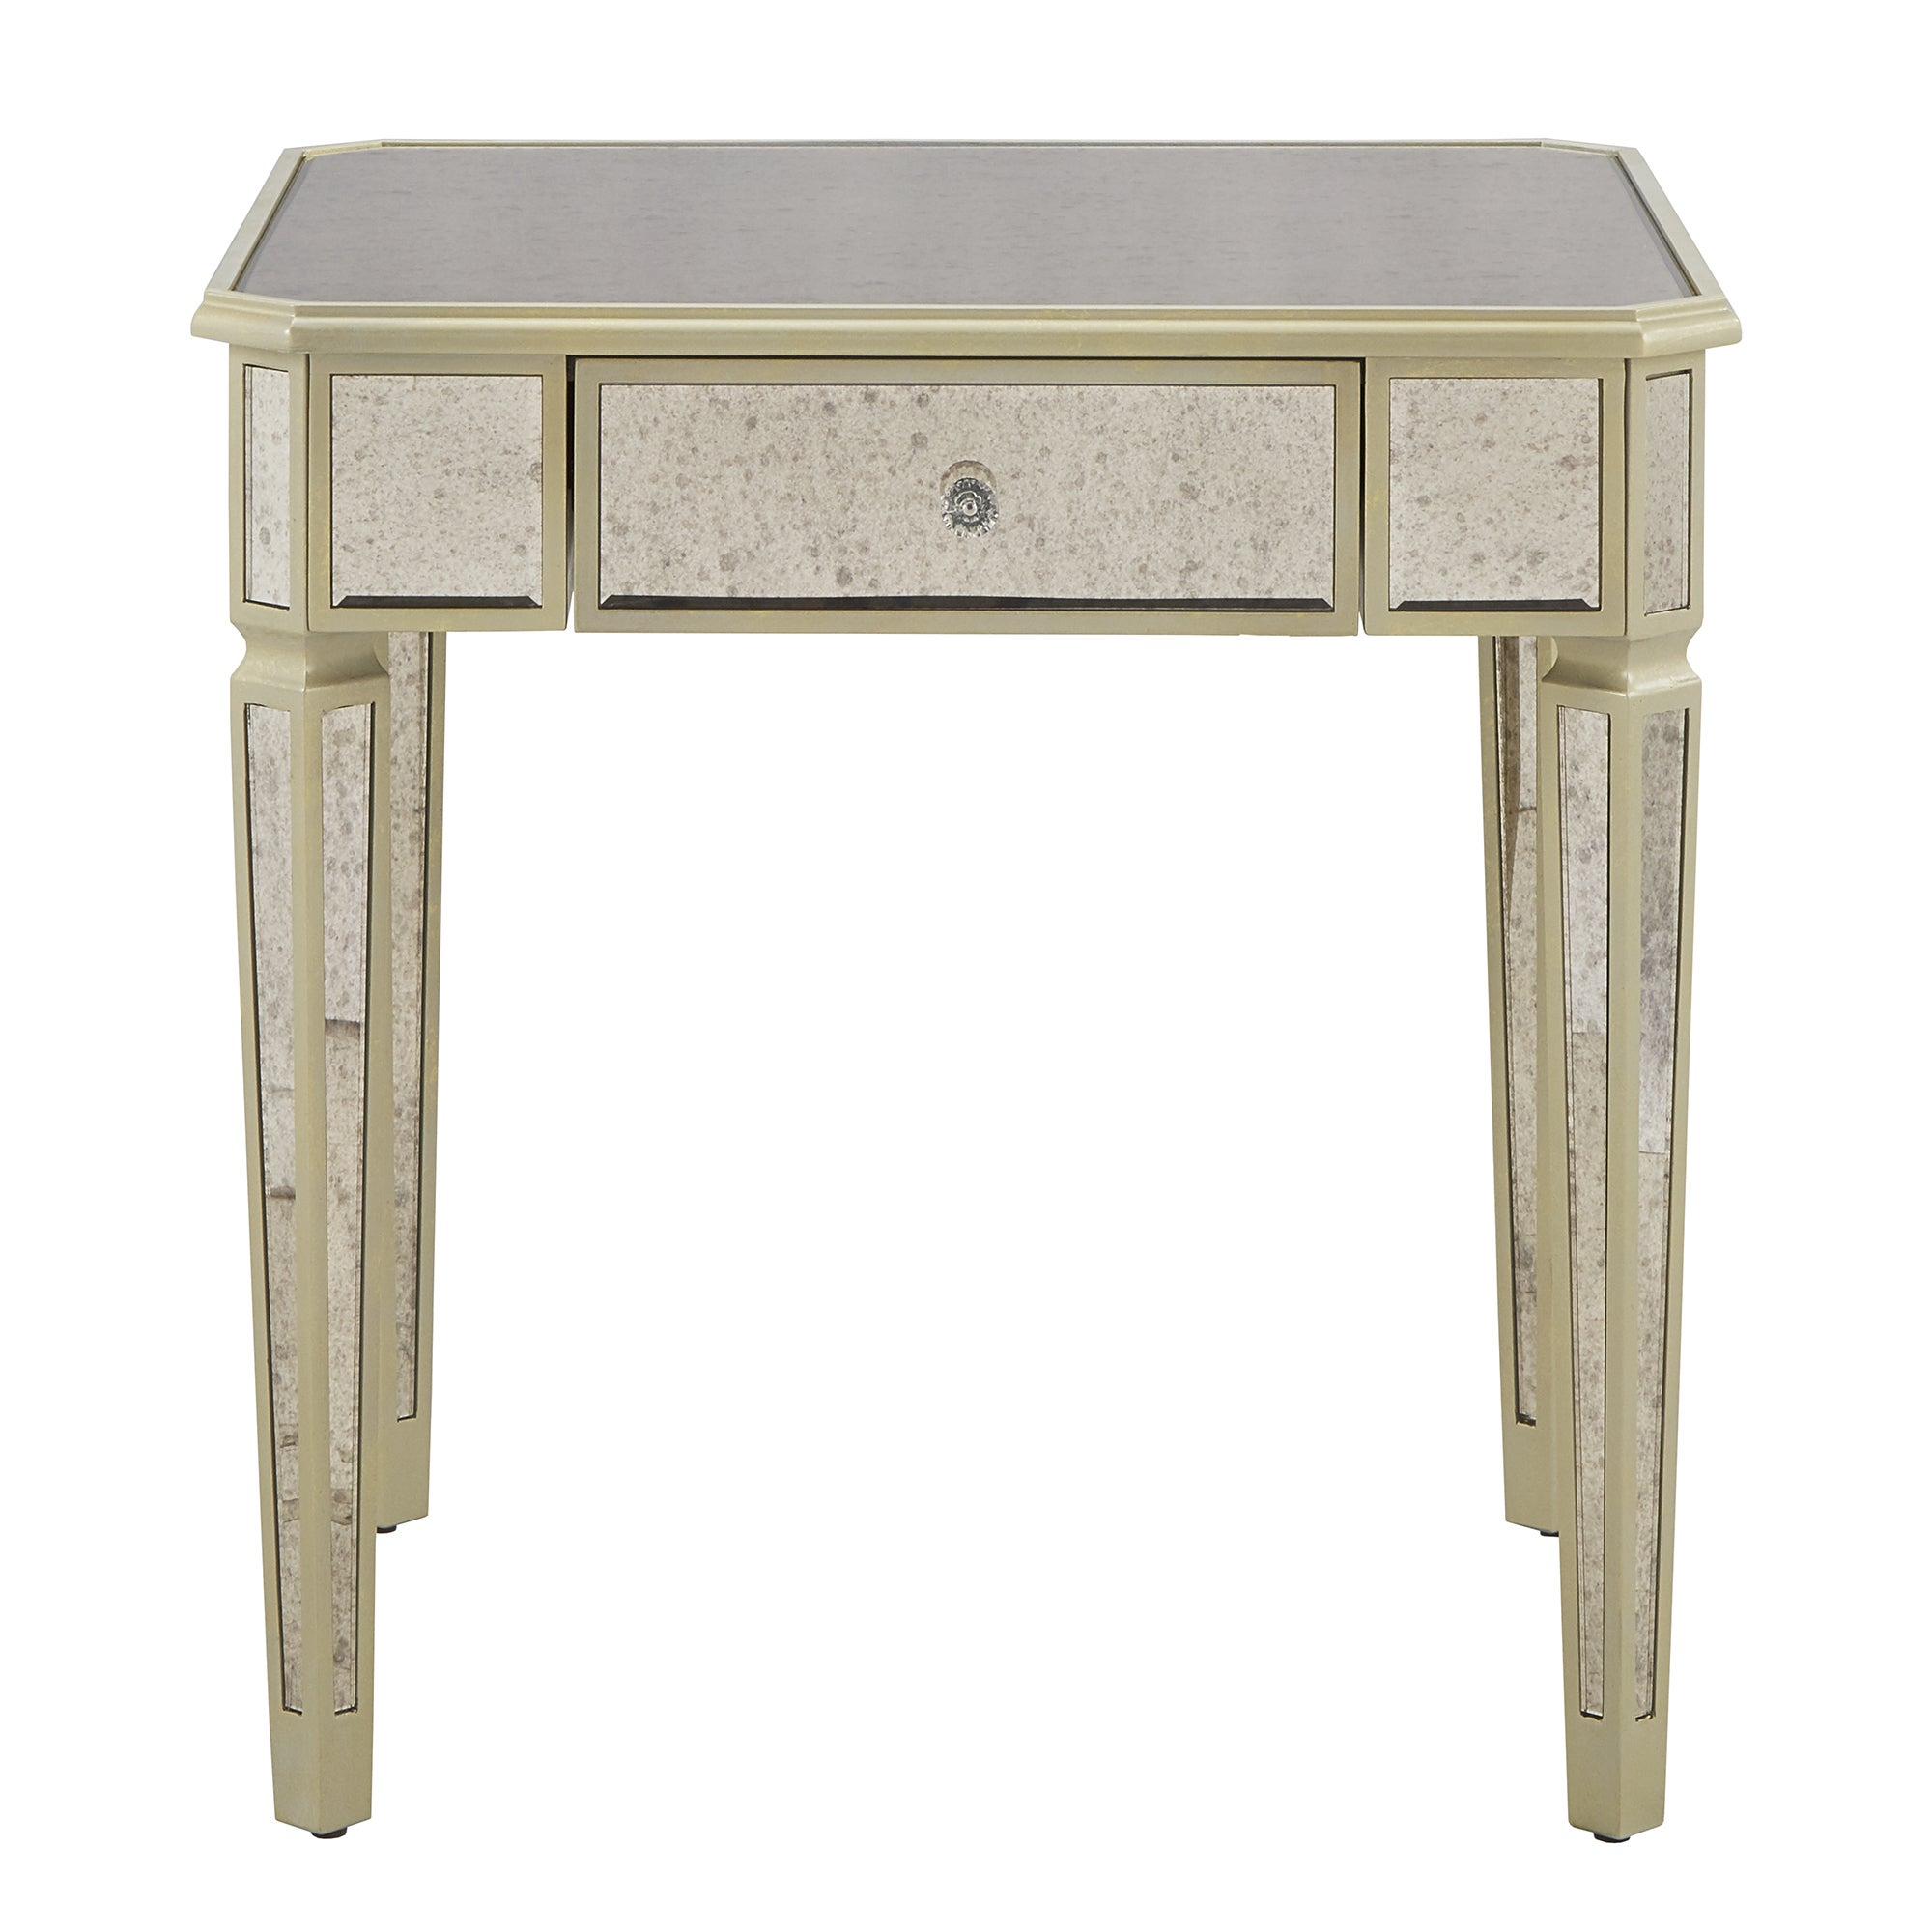 Chunwan Pw Oval Mirrored End Table With Drawer Design